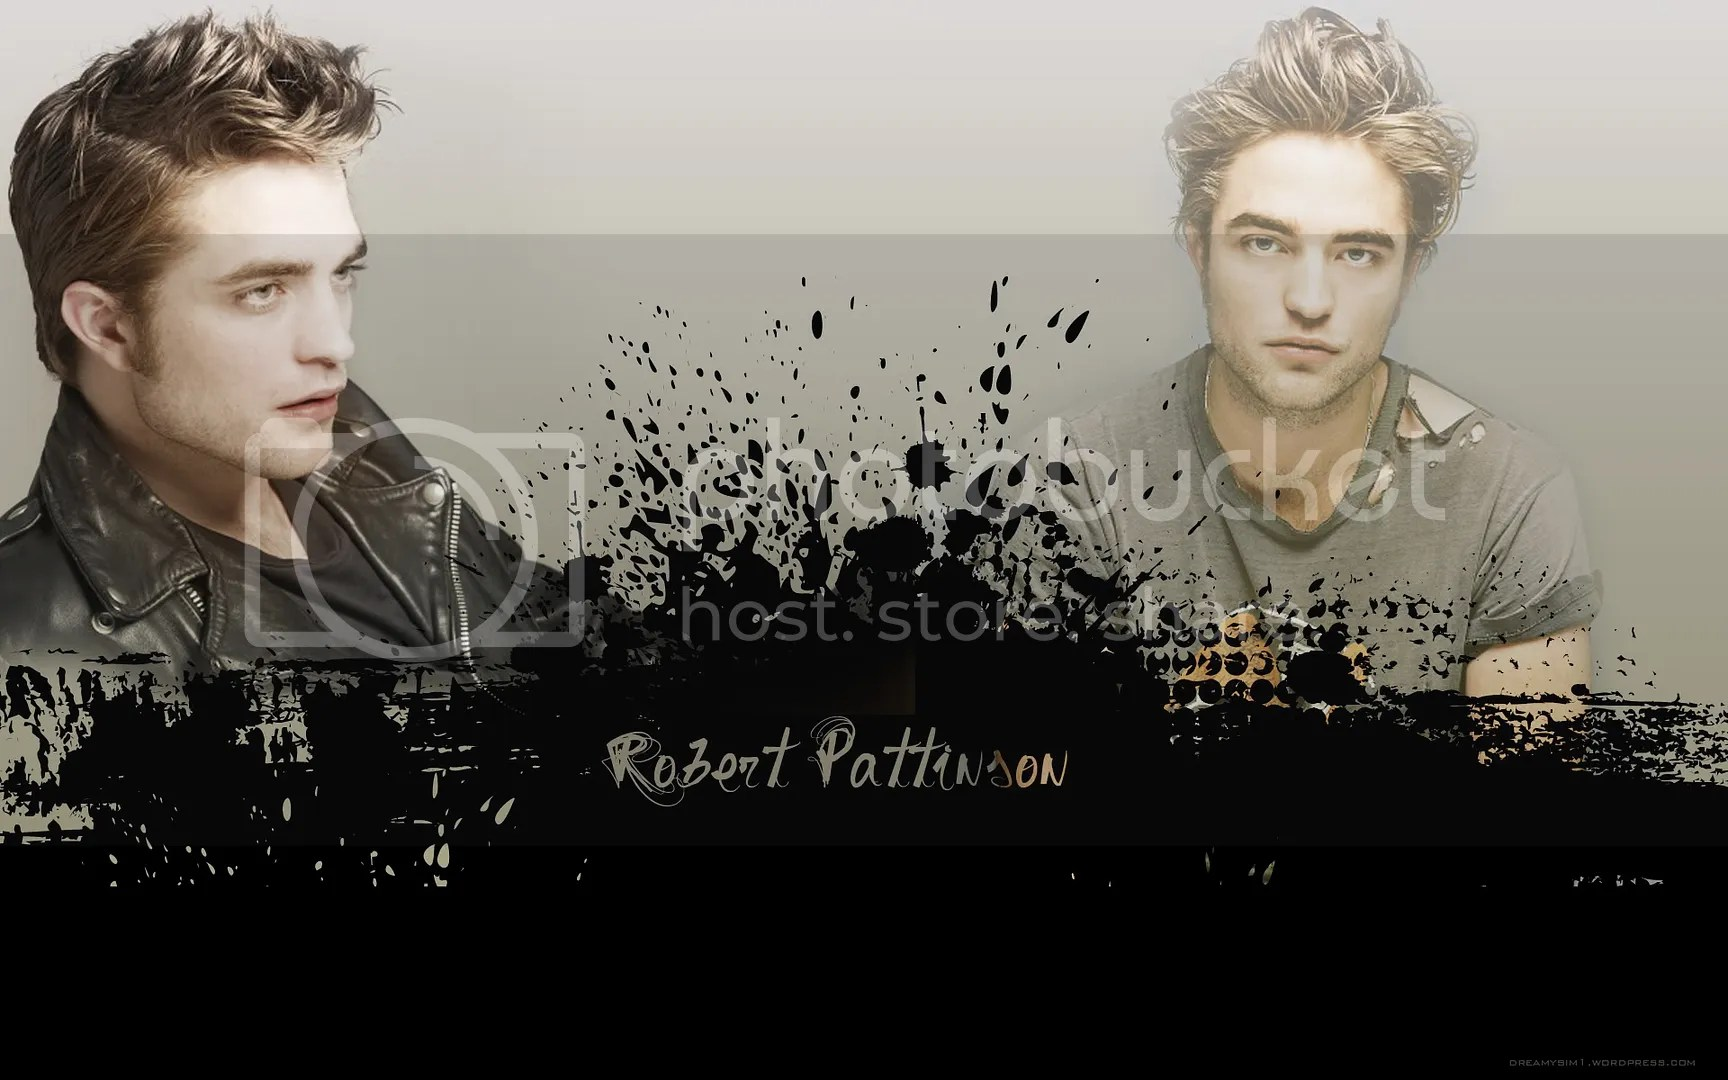 DreamySim1,wallpaper,Robert Pattinson